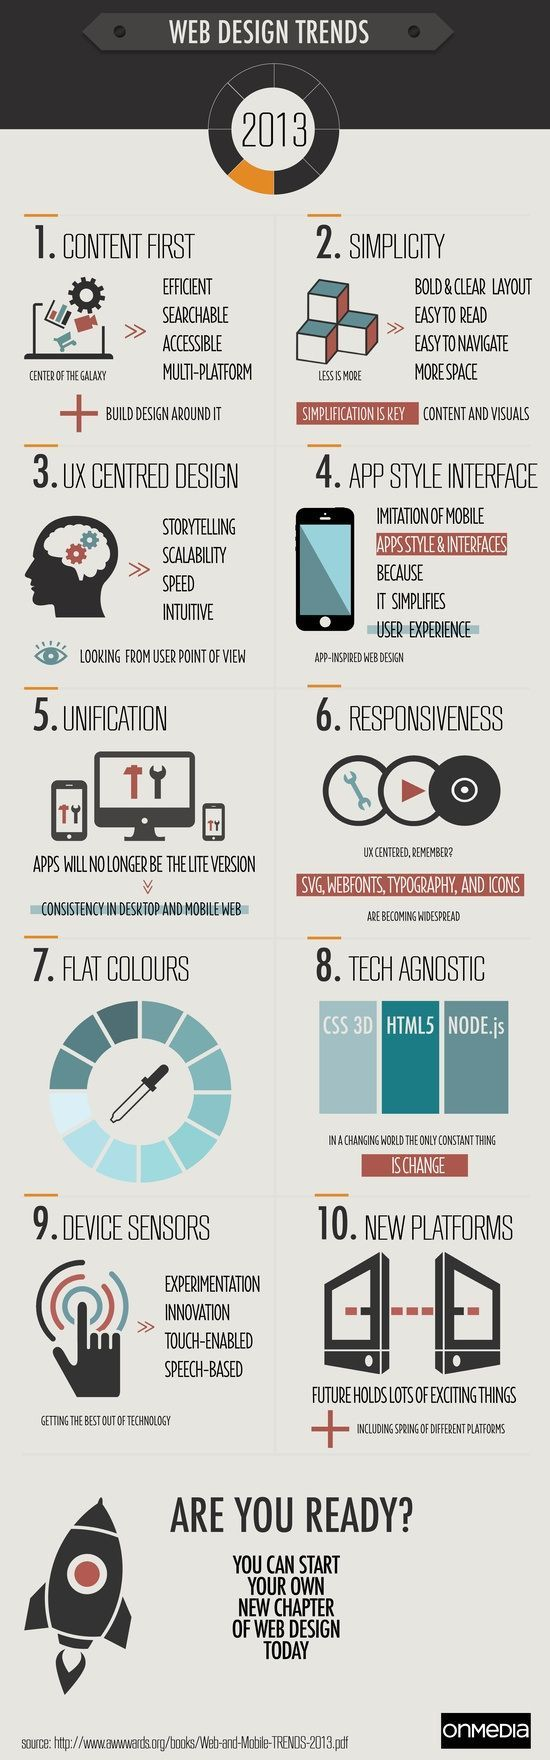 Web Design Infographic #webdesign #marketing #seo